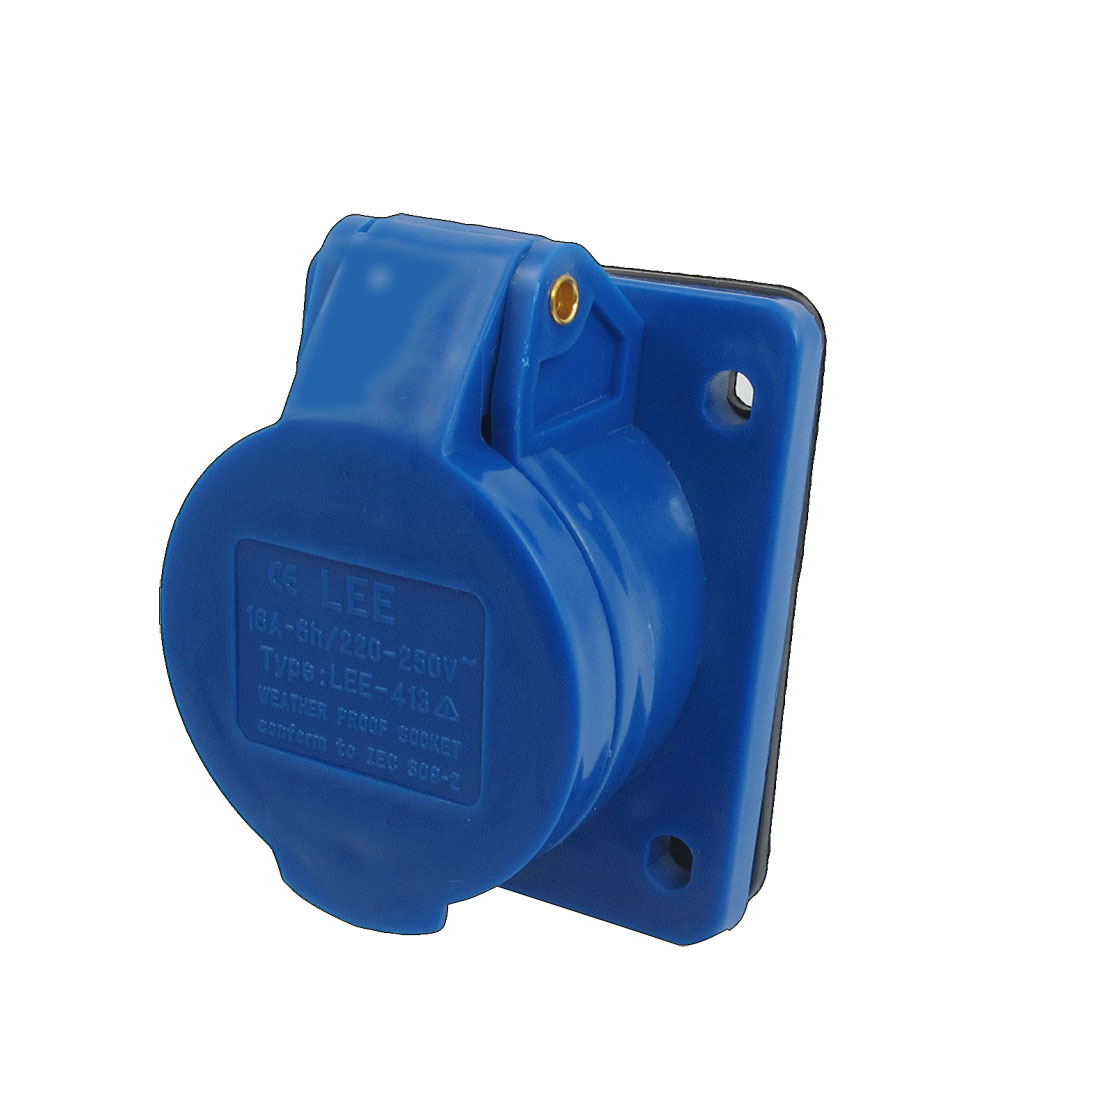 AC 220-250V 16A 2P+E IEC309-2 Panel Mount Industrial Socket Blue